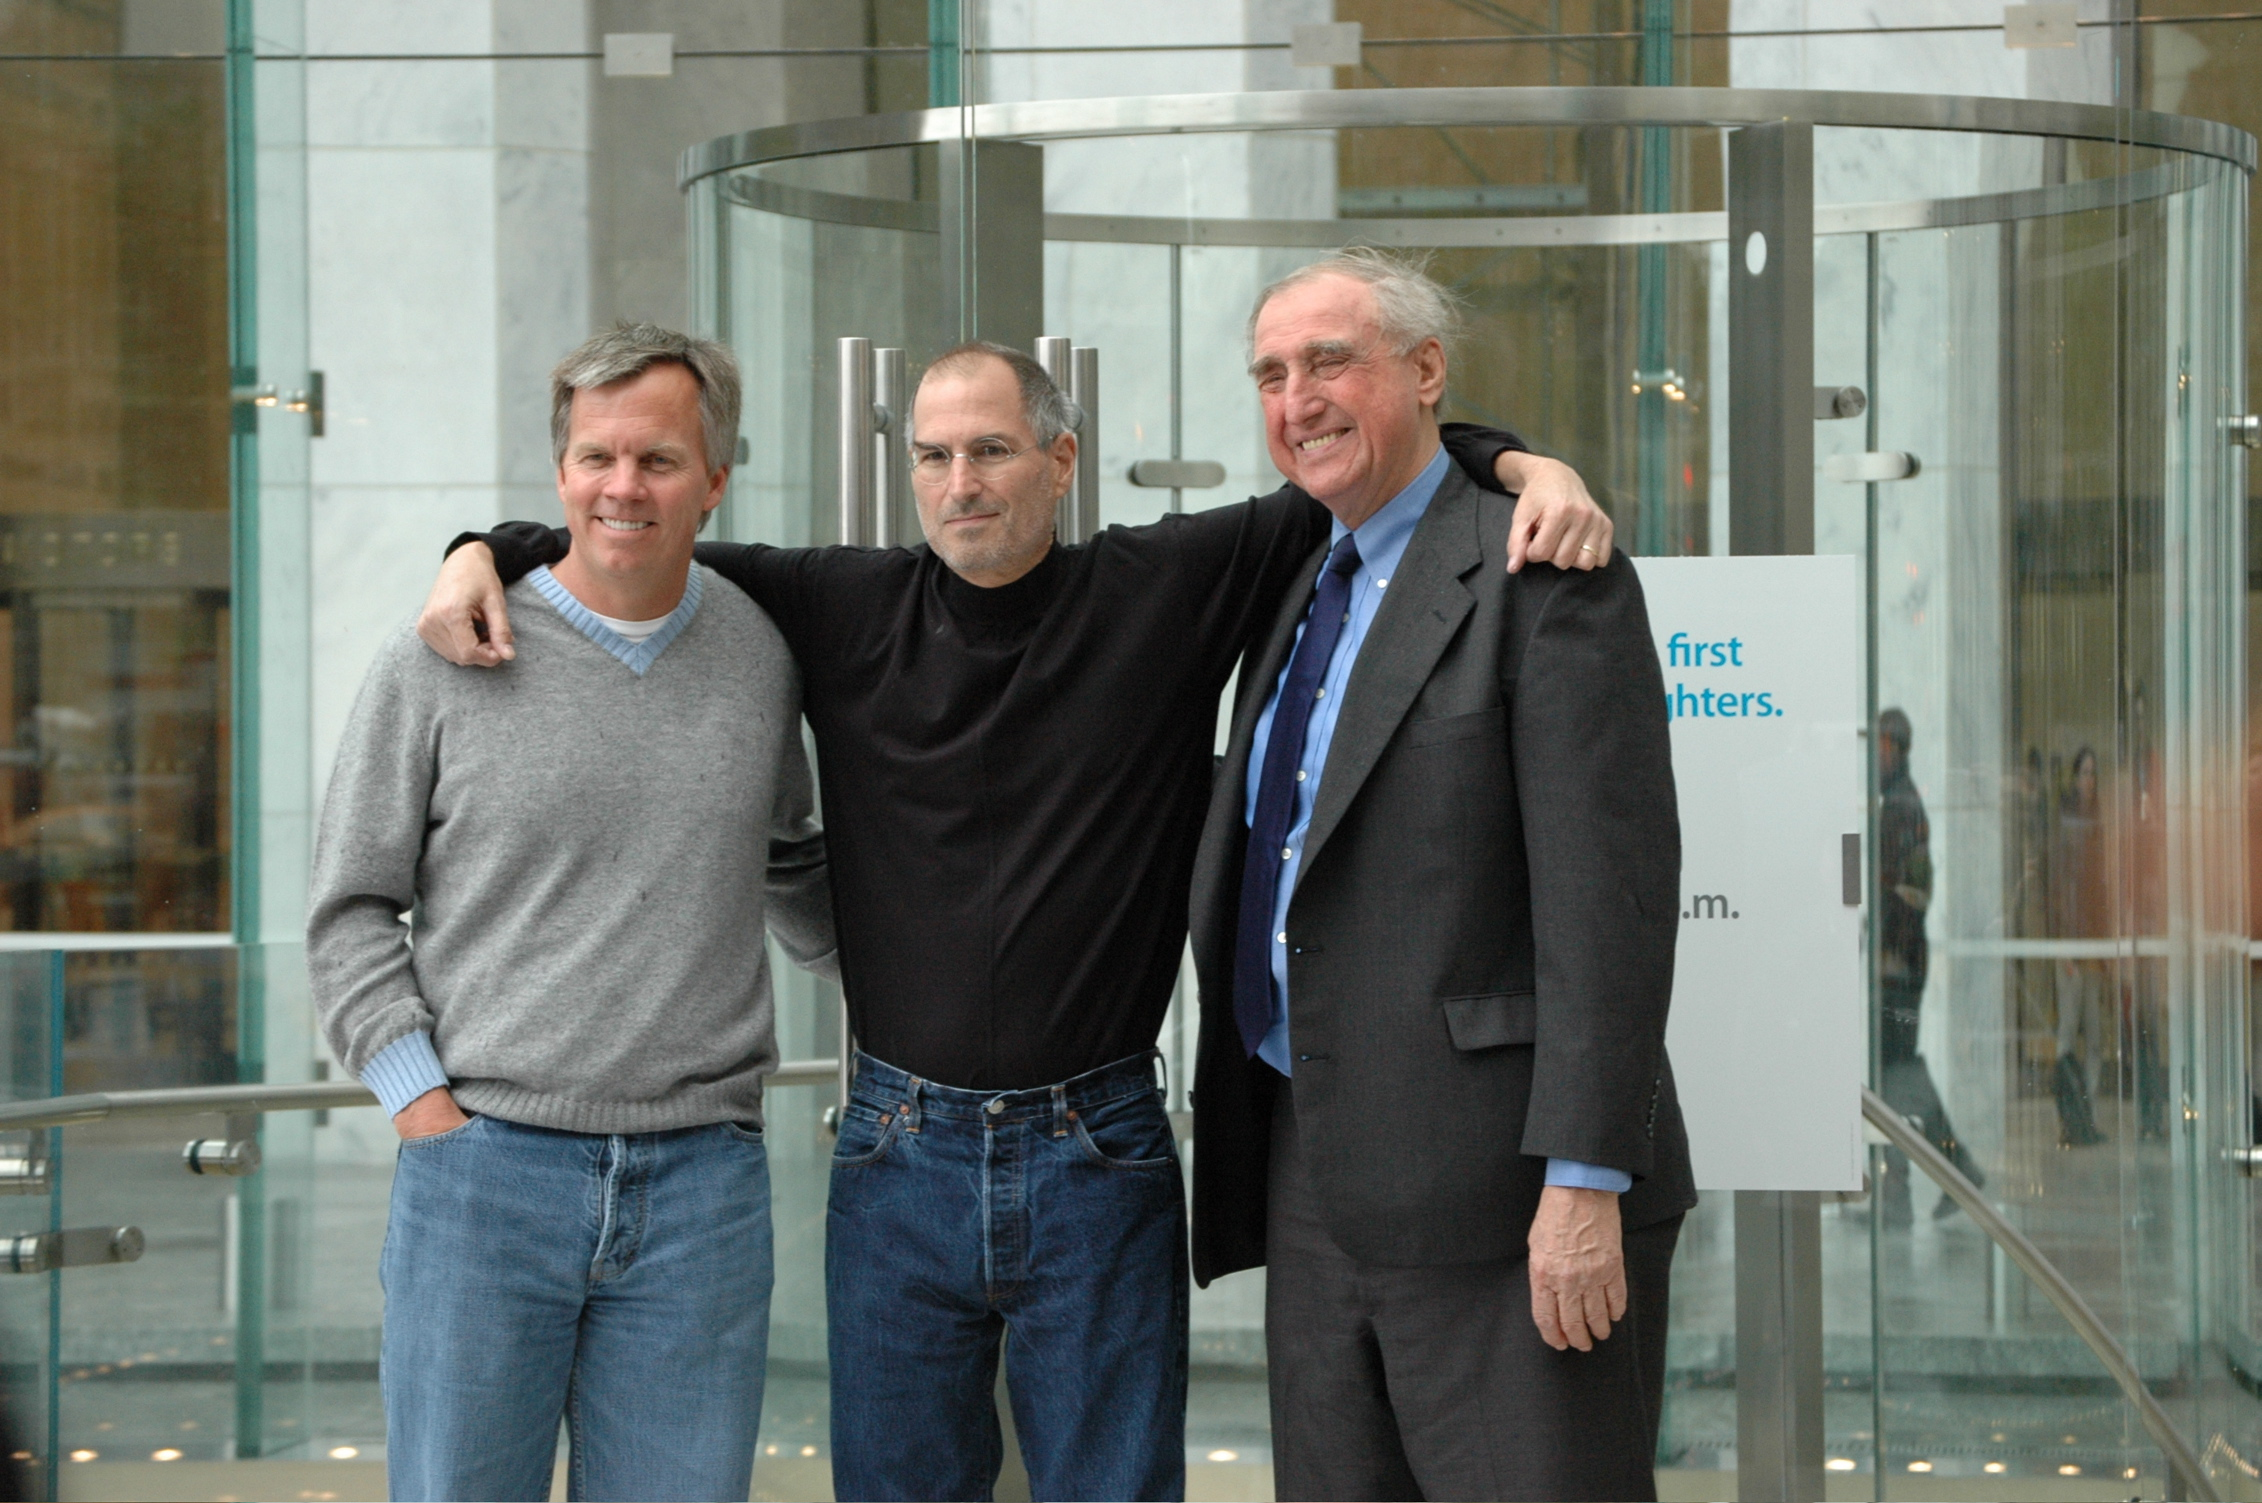 Ron Johnson, Steve Jobs e Bohlin Cywinski Jackson